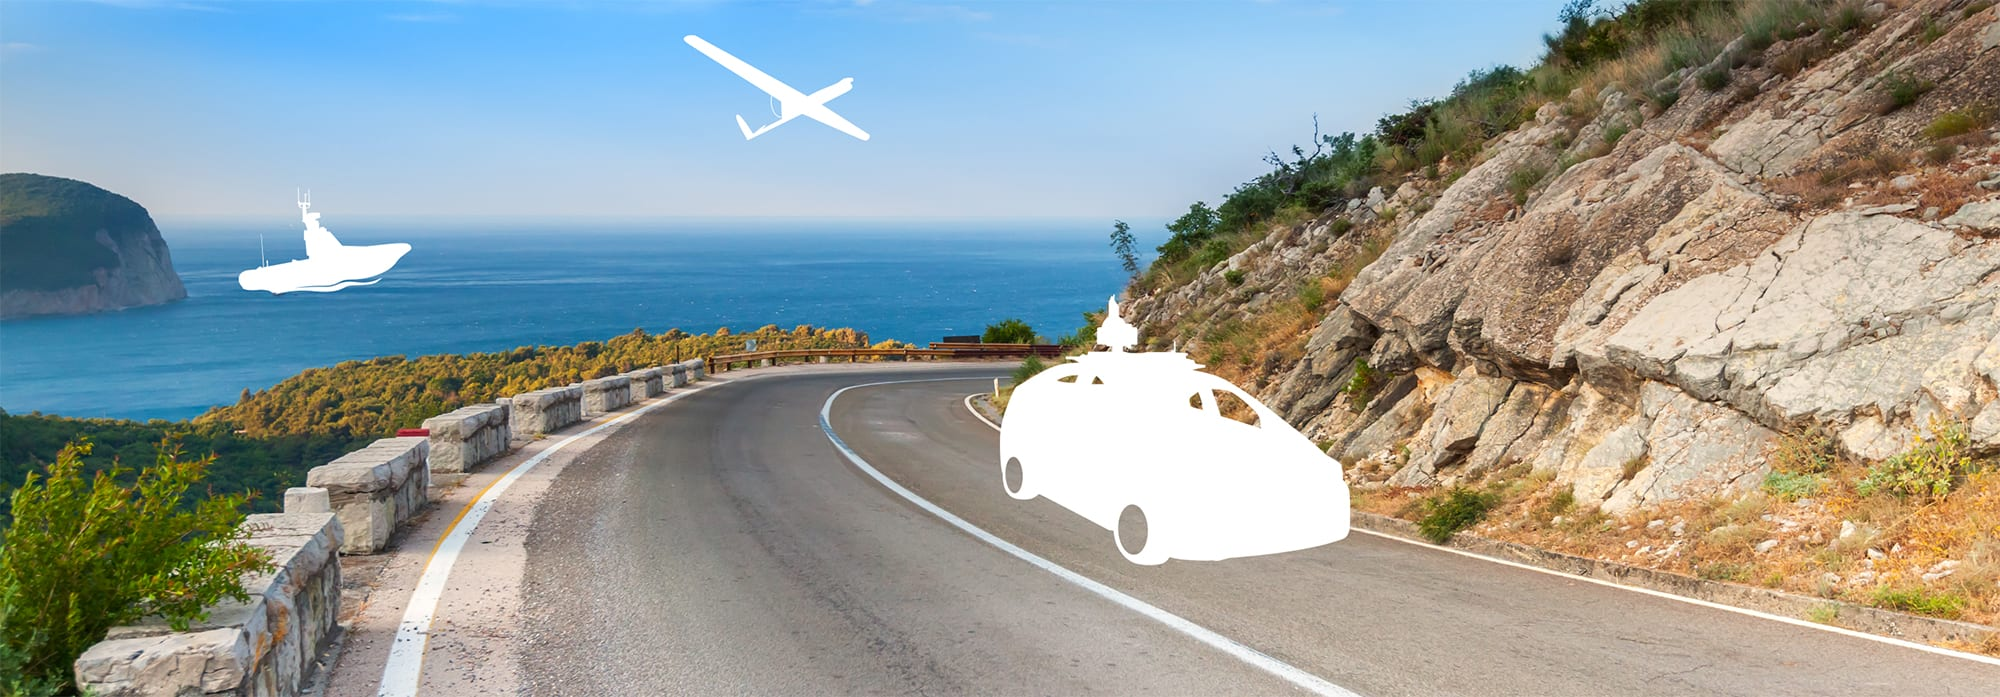 Motion and Navigation Sensors for demanding applications - SBG Systems